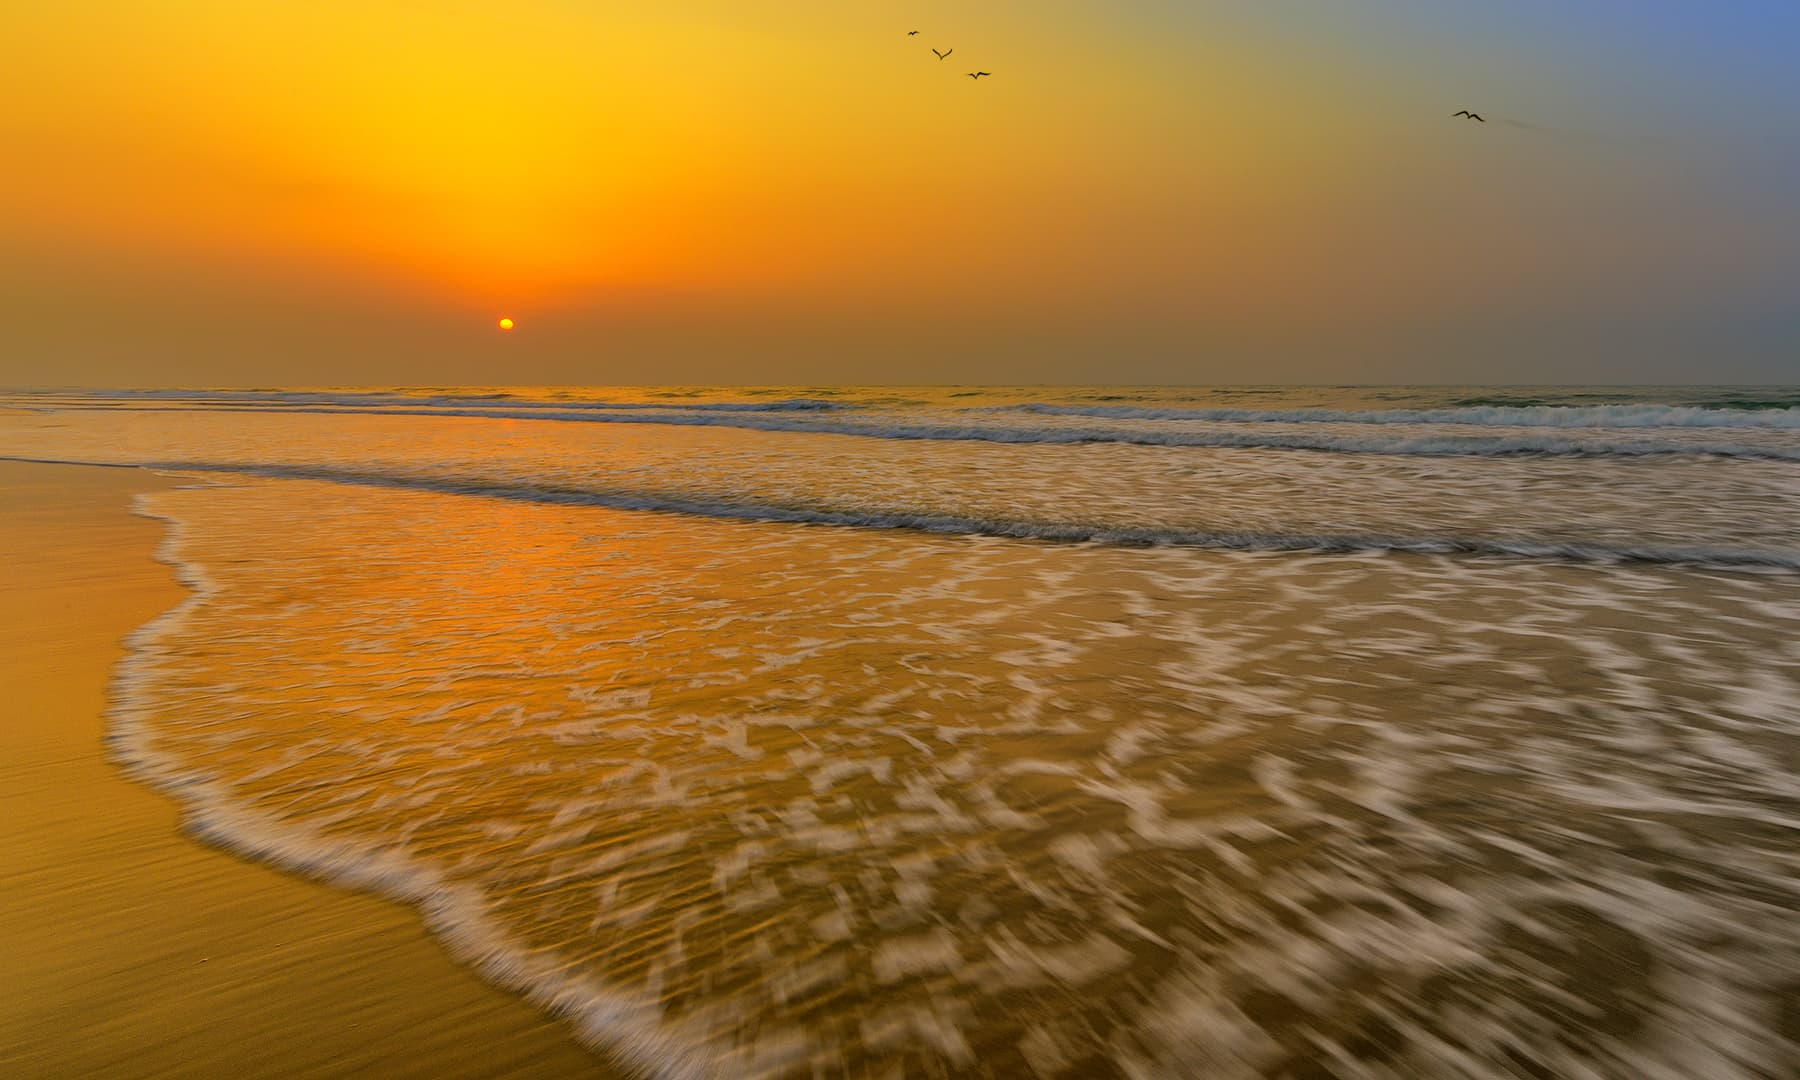 Sunrise at Kund Malir.